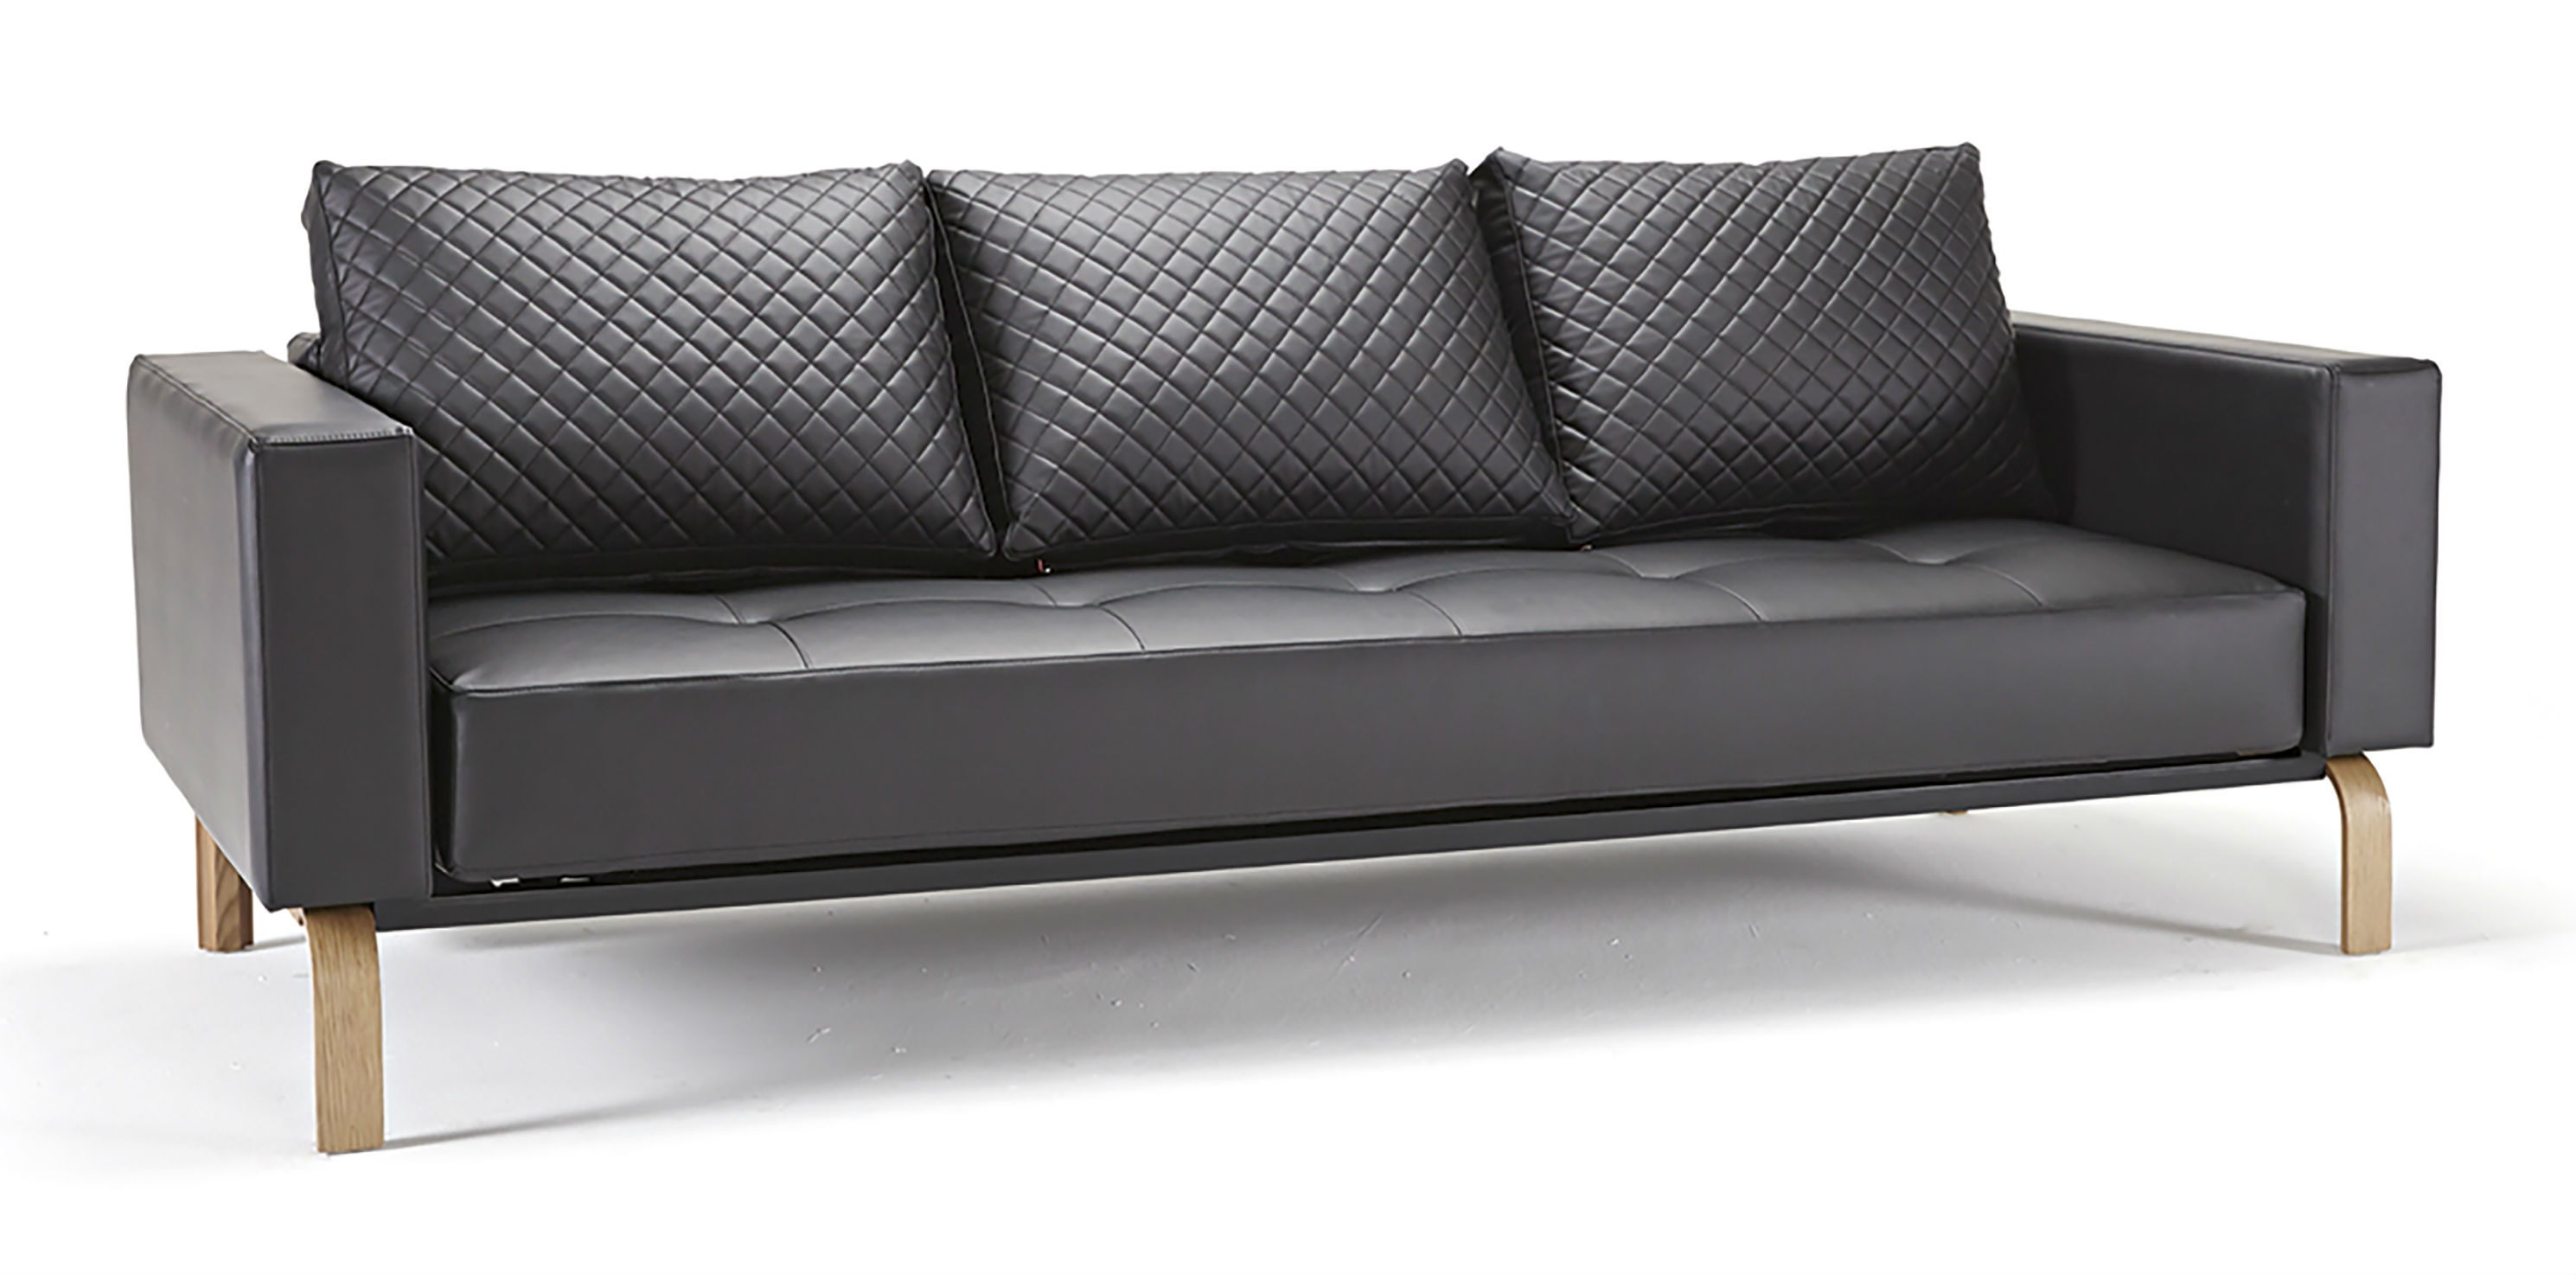 Cassius Quilt Deluxe Full Size Sofa Bed, 582 Leather Look Black PU + Oak  Legs by Innovation Living